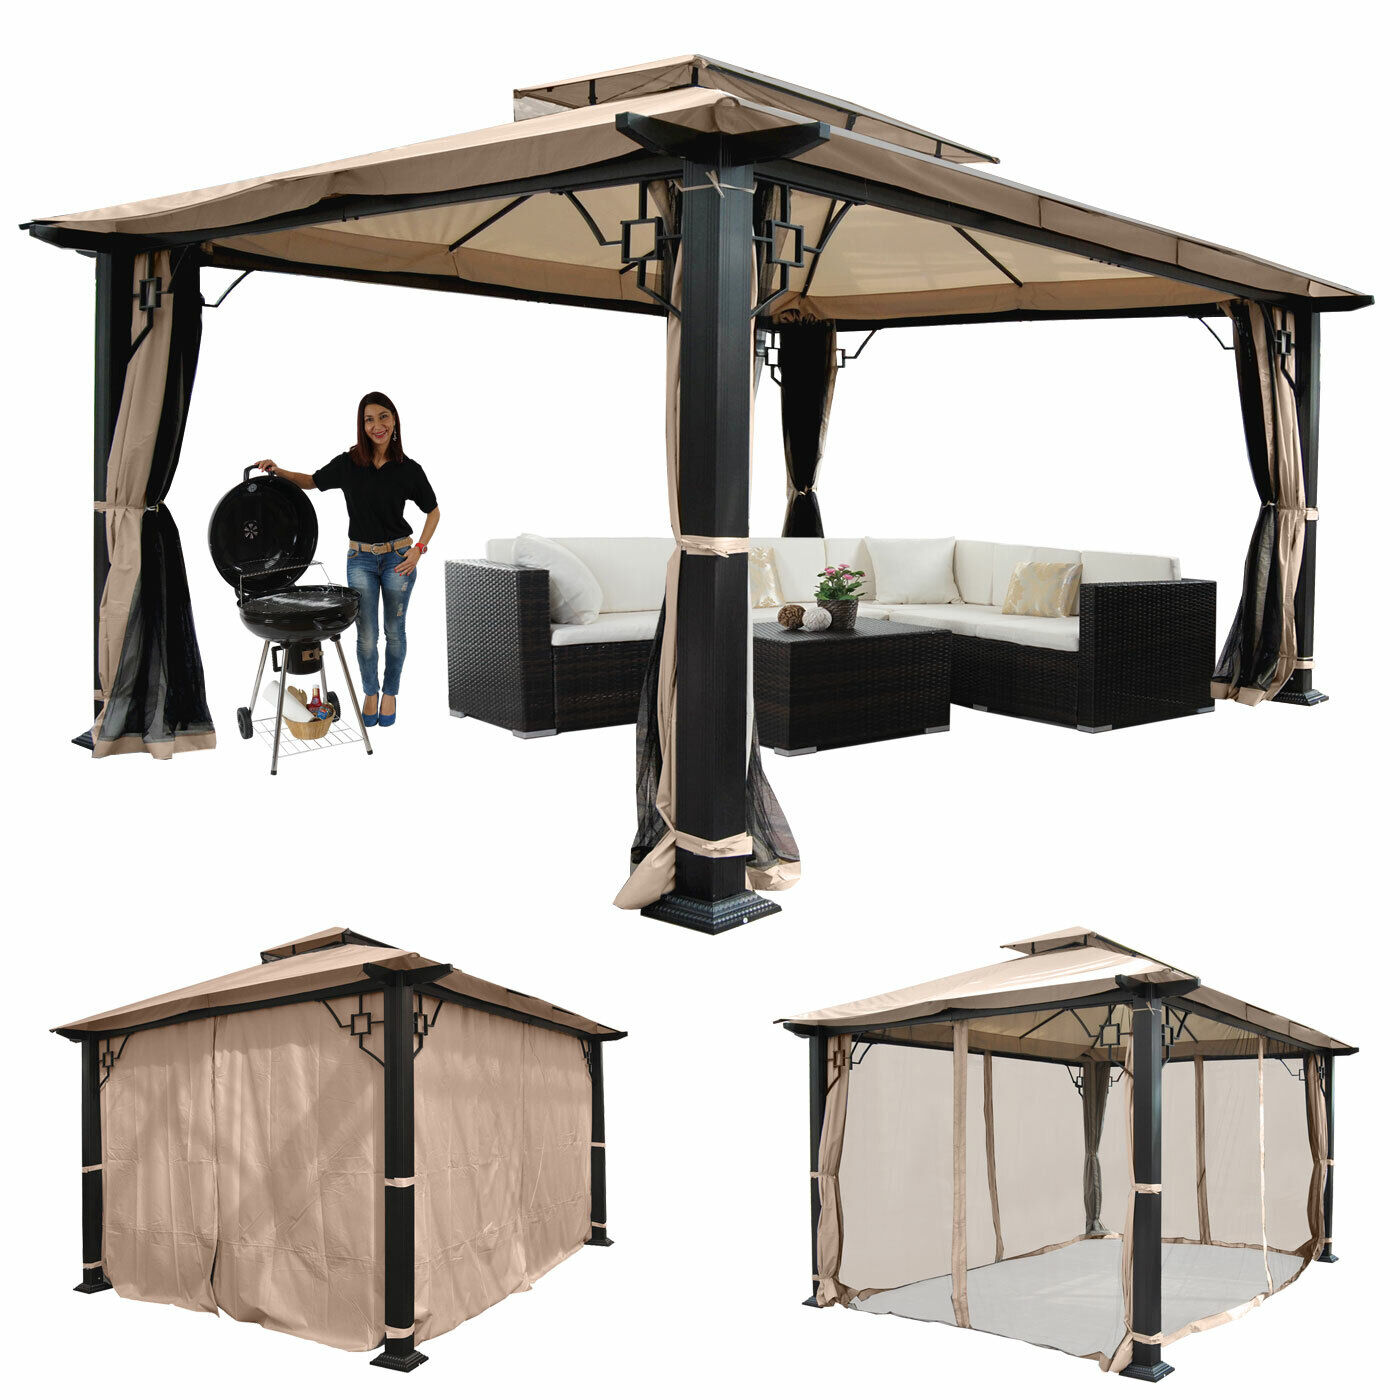 pergola mira garten pavillon 12cm luxus alu gestell 3 5x3 5m oder 4 5x3 5m eur 559 99. Black Bedroom Furniture Sets. Home Design Ideas